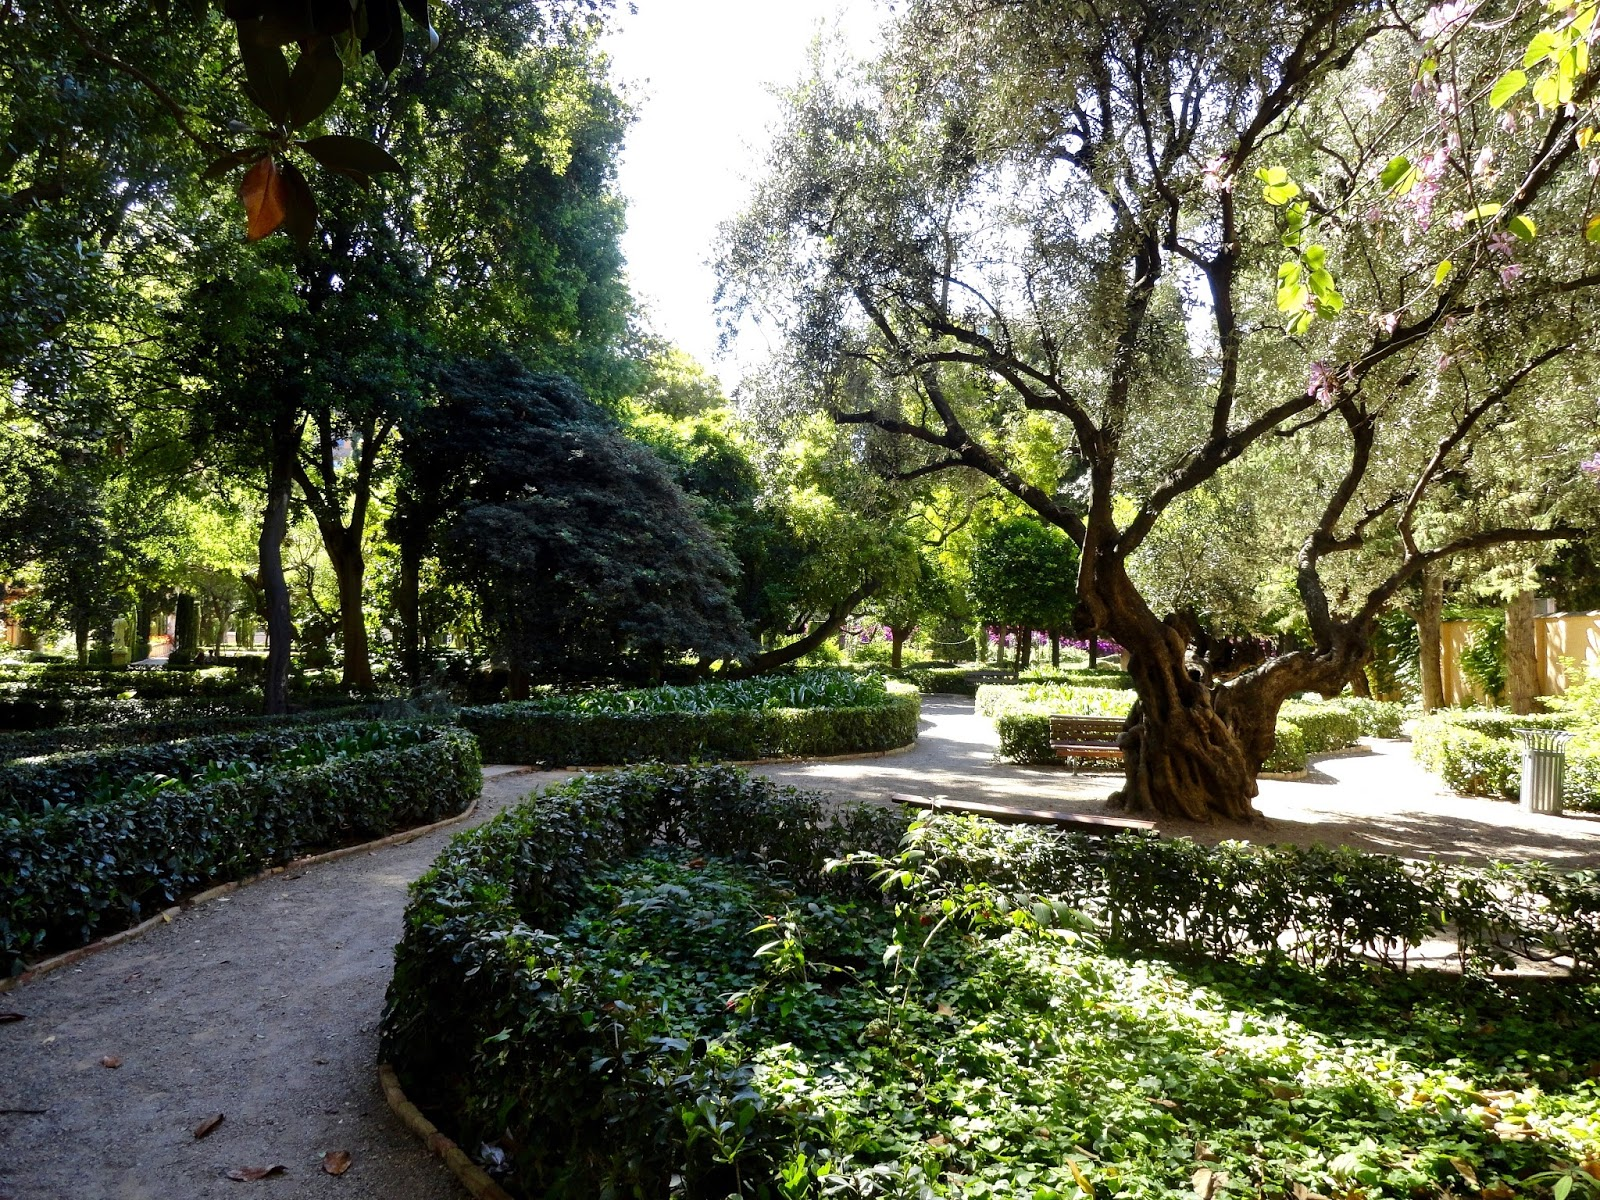 monforte garden valencia spain trees green